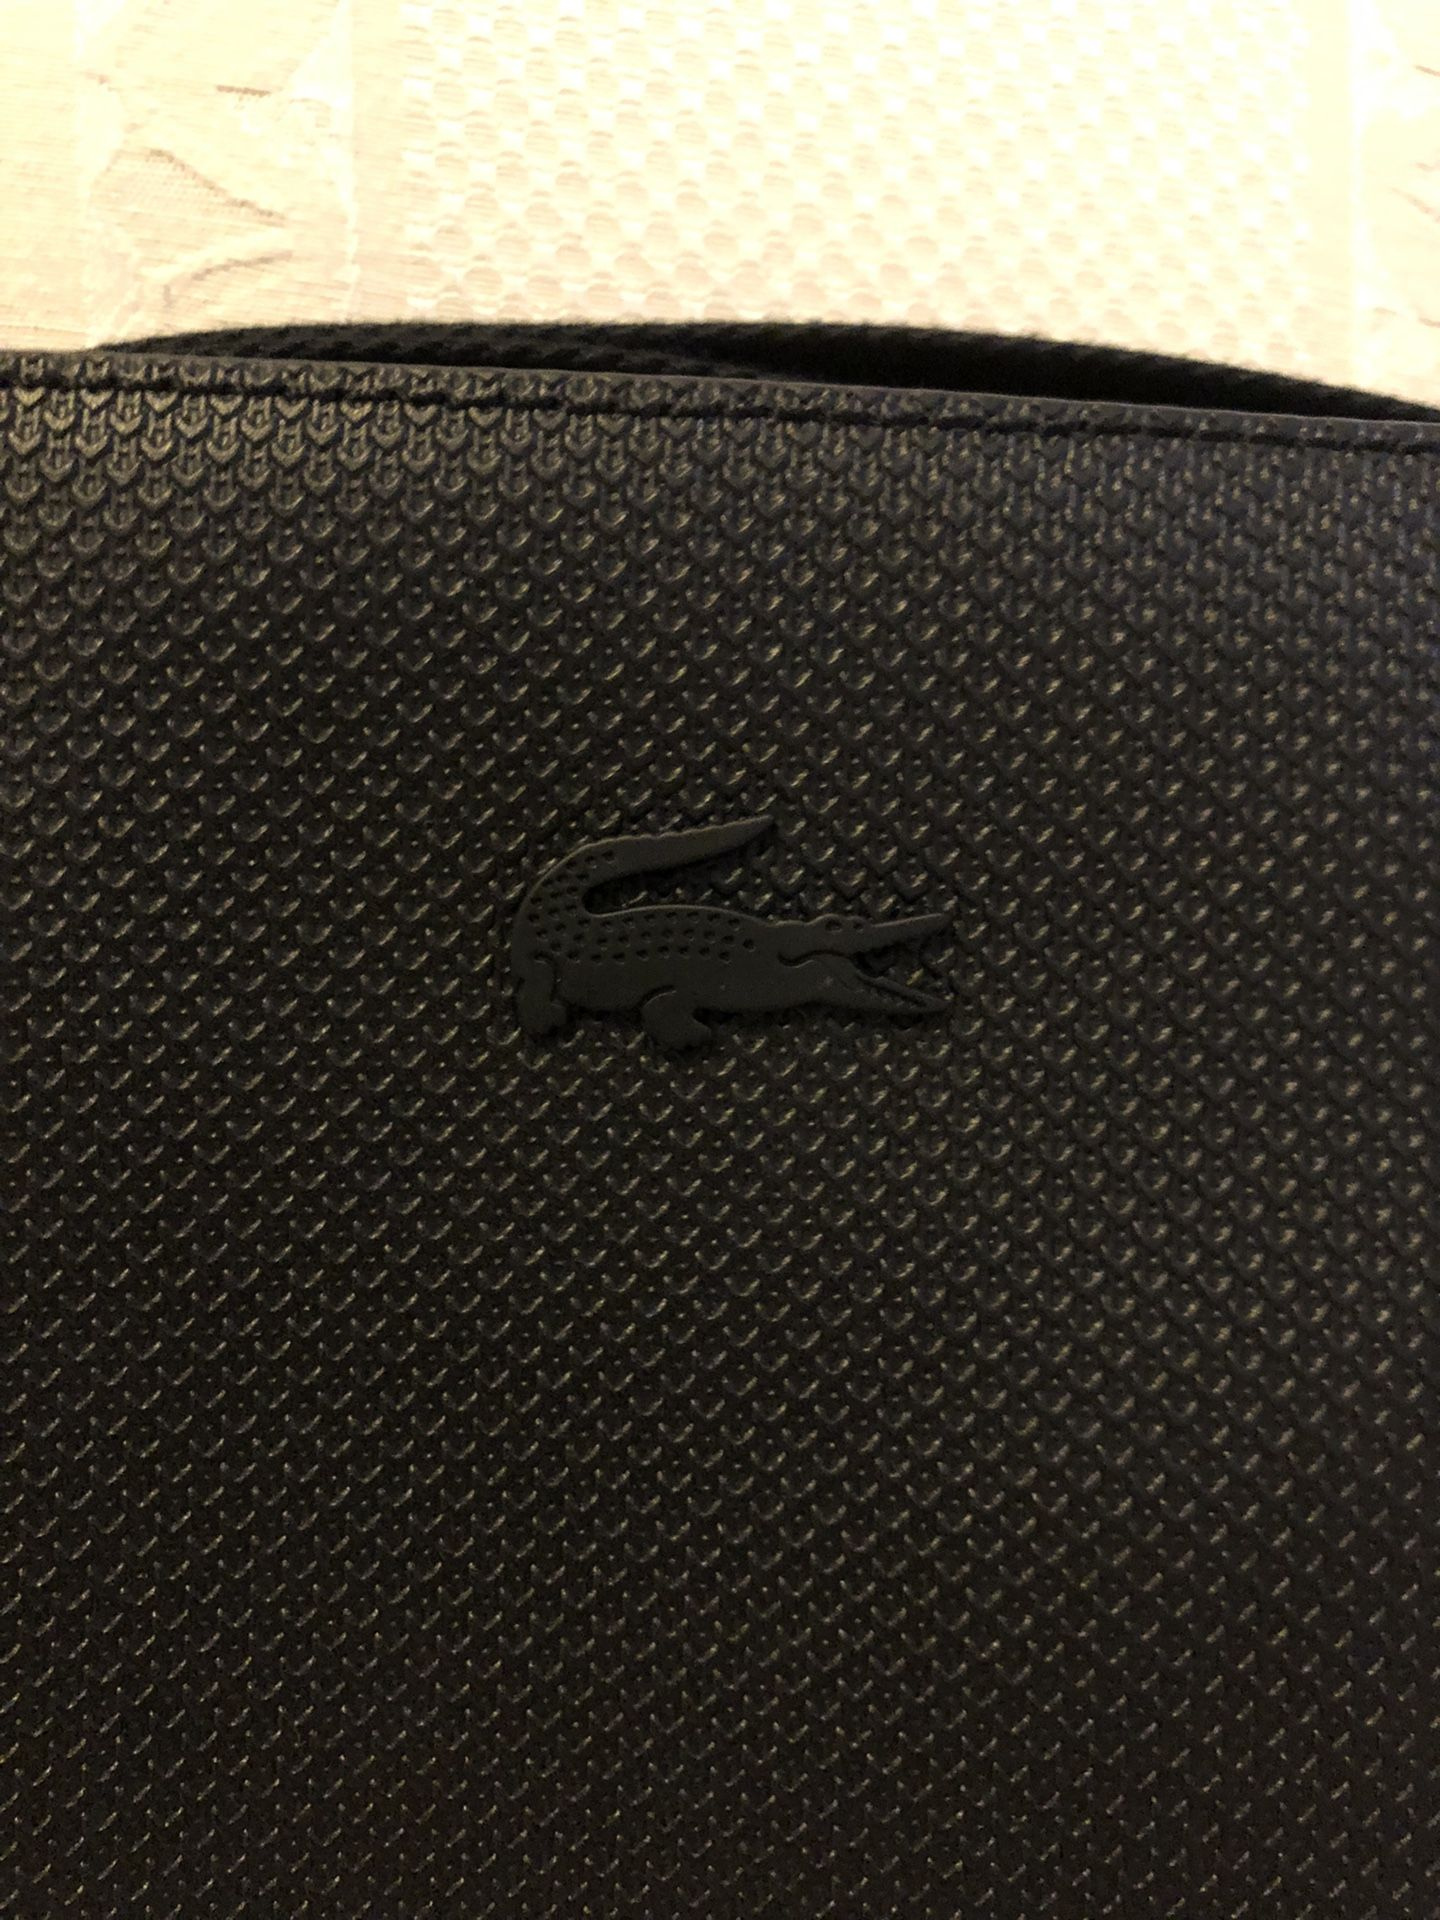 Lacoste Crossbody Bag: After The Perfect Accessory To Store Essentials